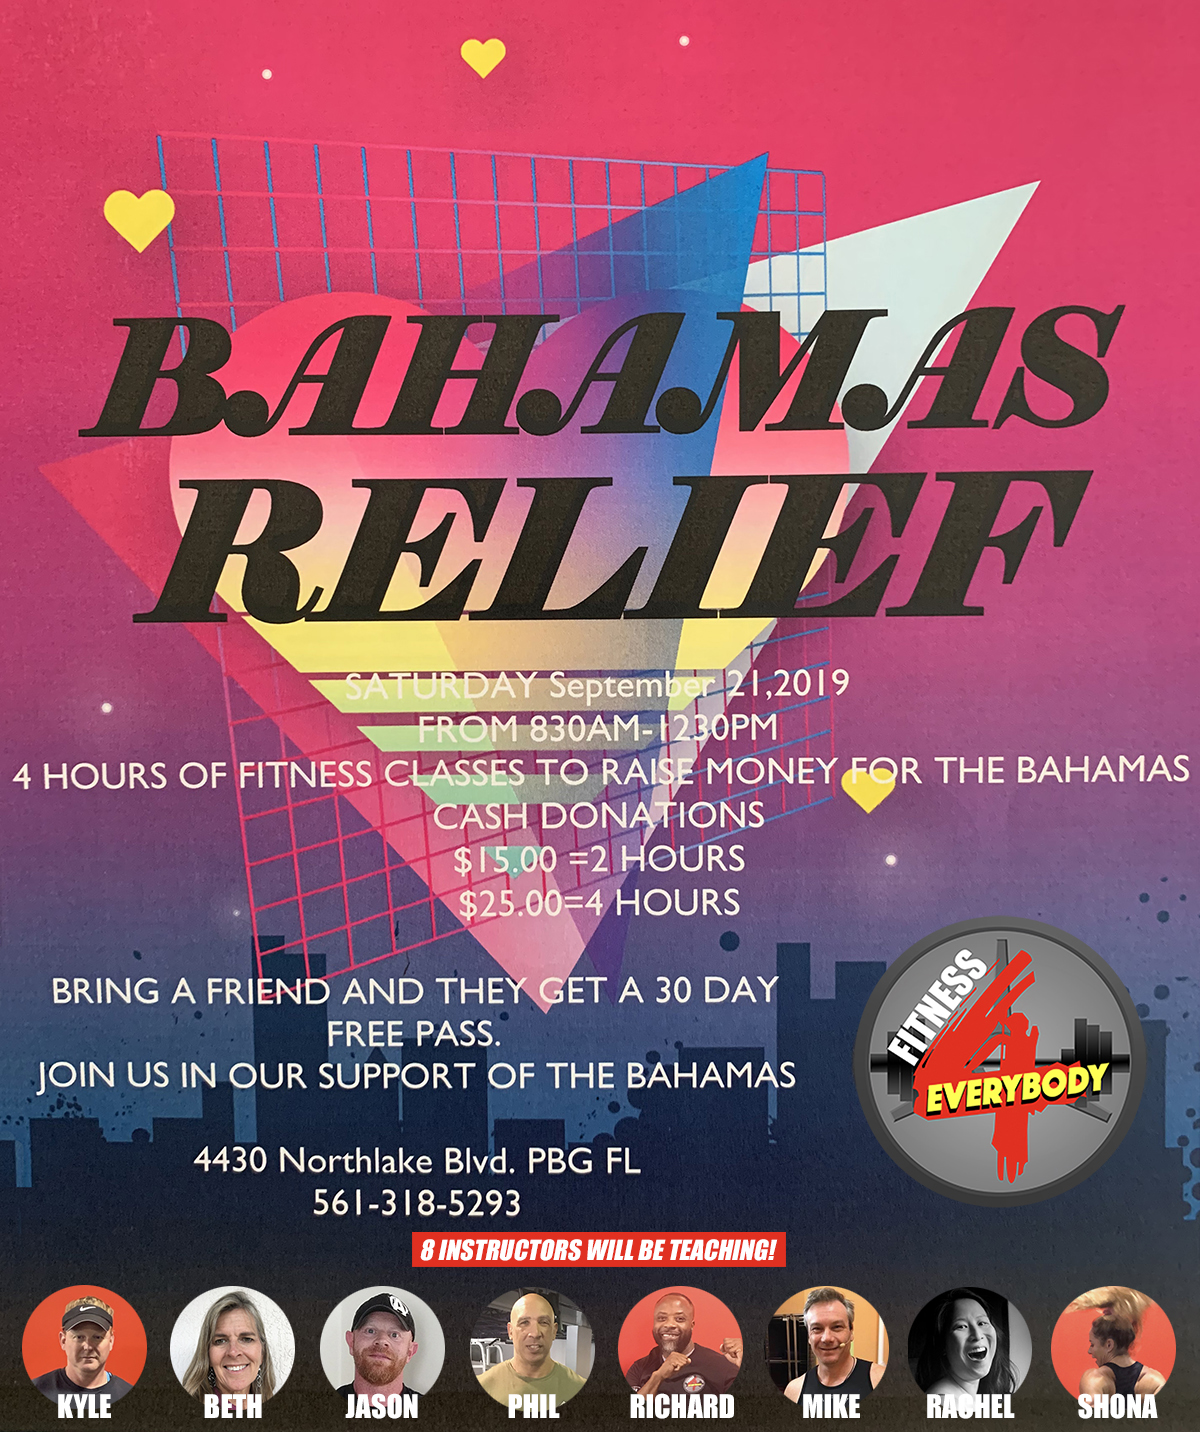 Bahamas Relief Zumba Masters Class - September 21th, 2019